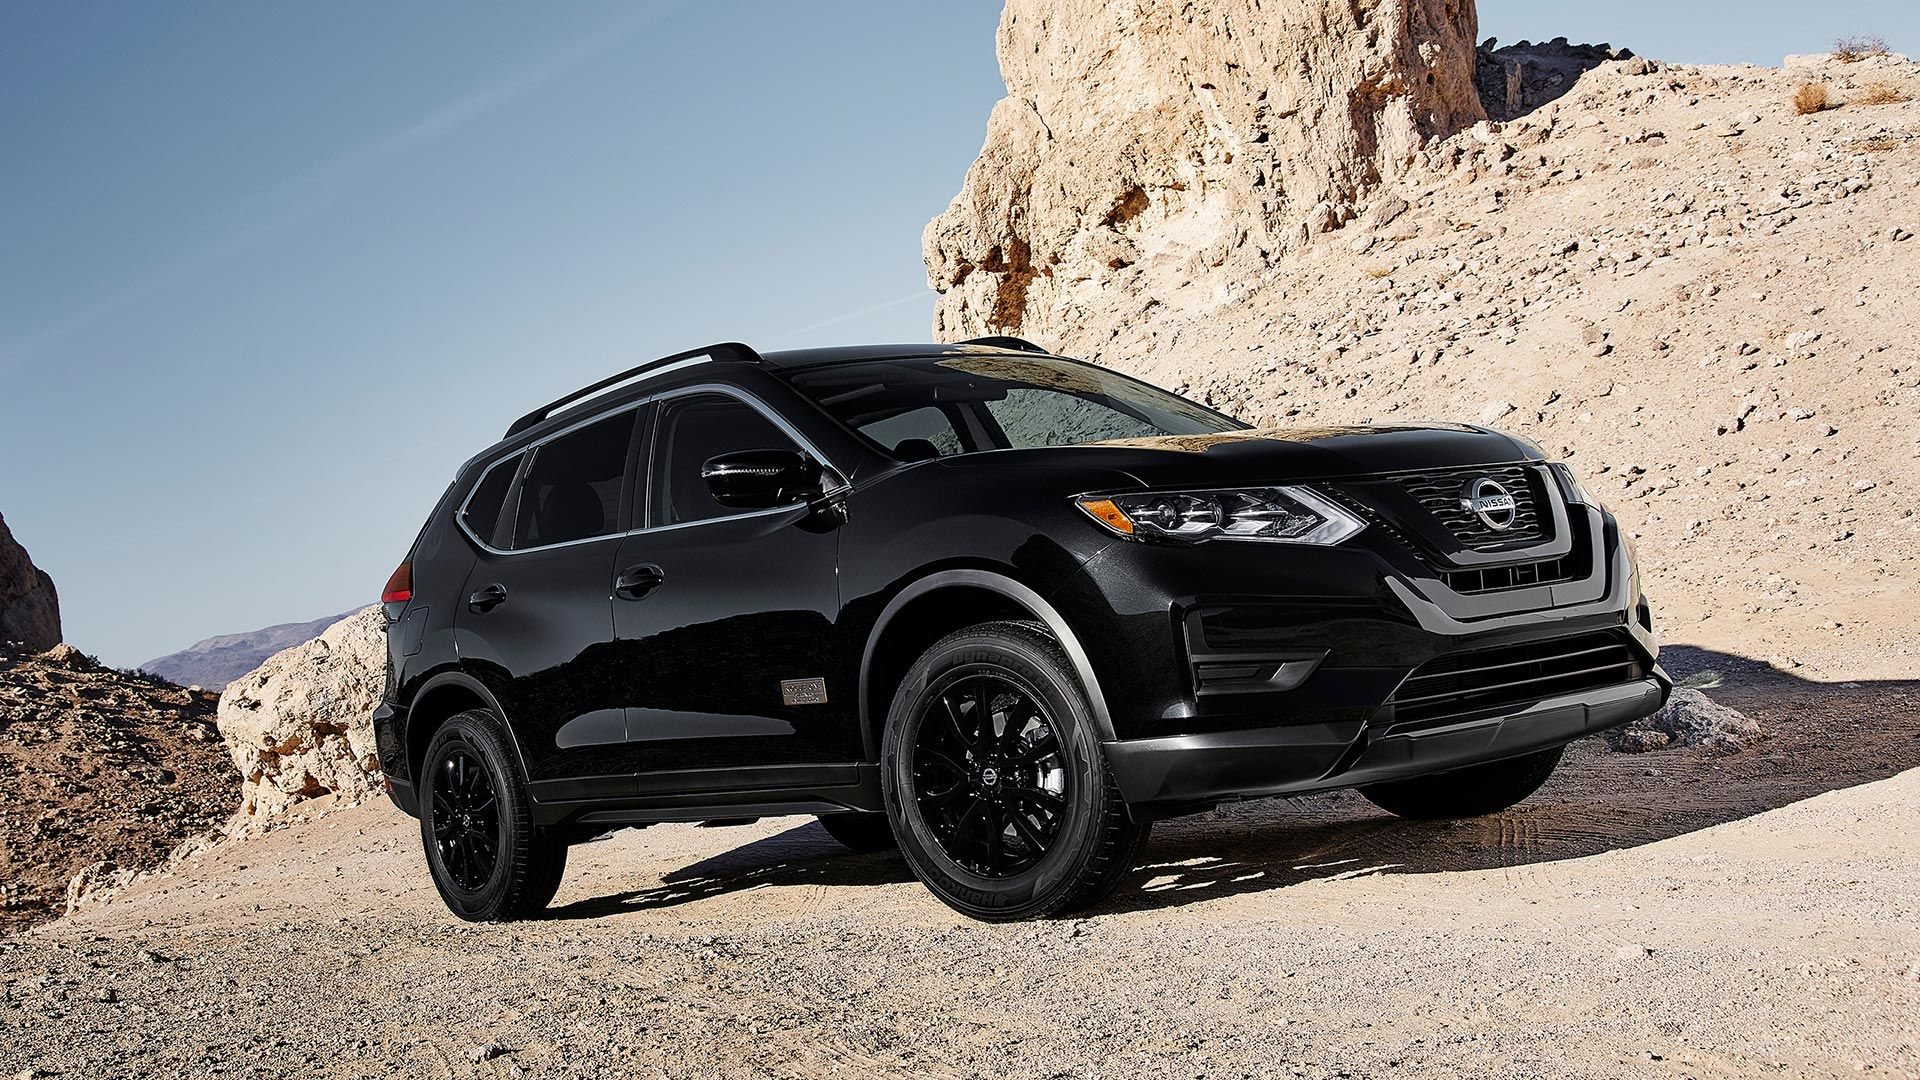 2017 Nissan Rogue One Star Wars Limited Edition In Magnetic Black Nissan Usa Nissan Rogue Nissan Suv